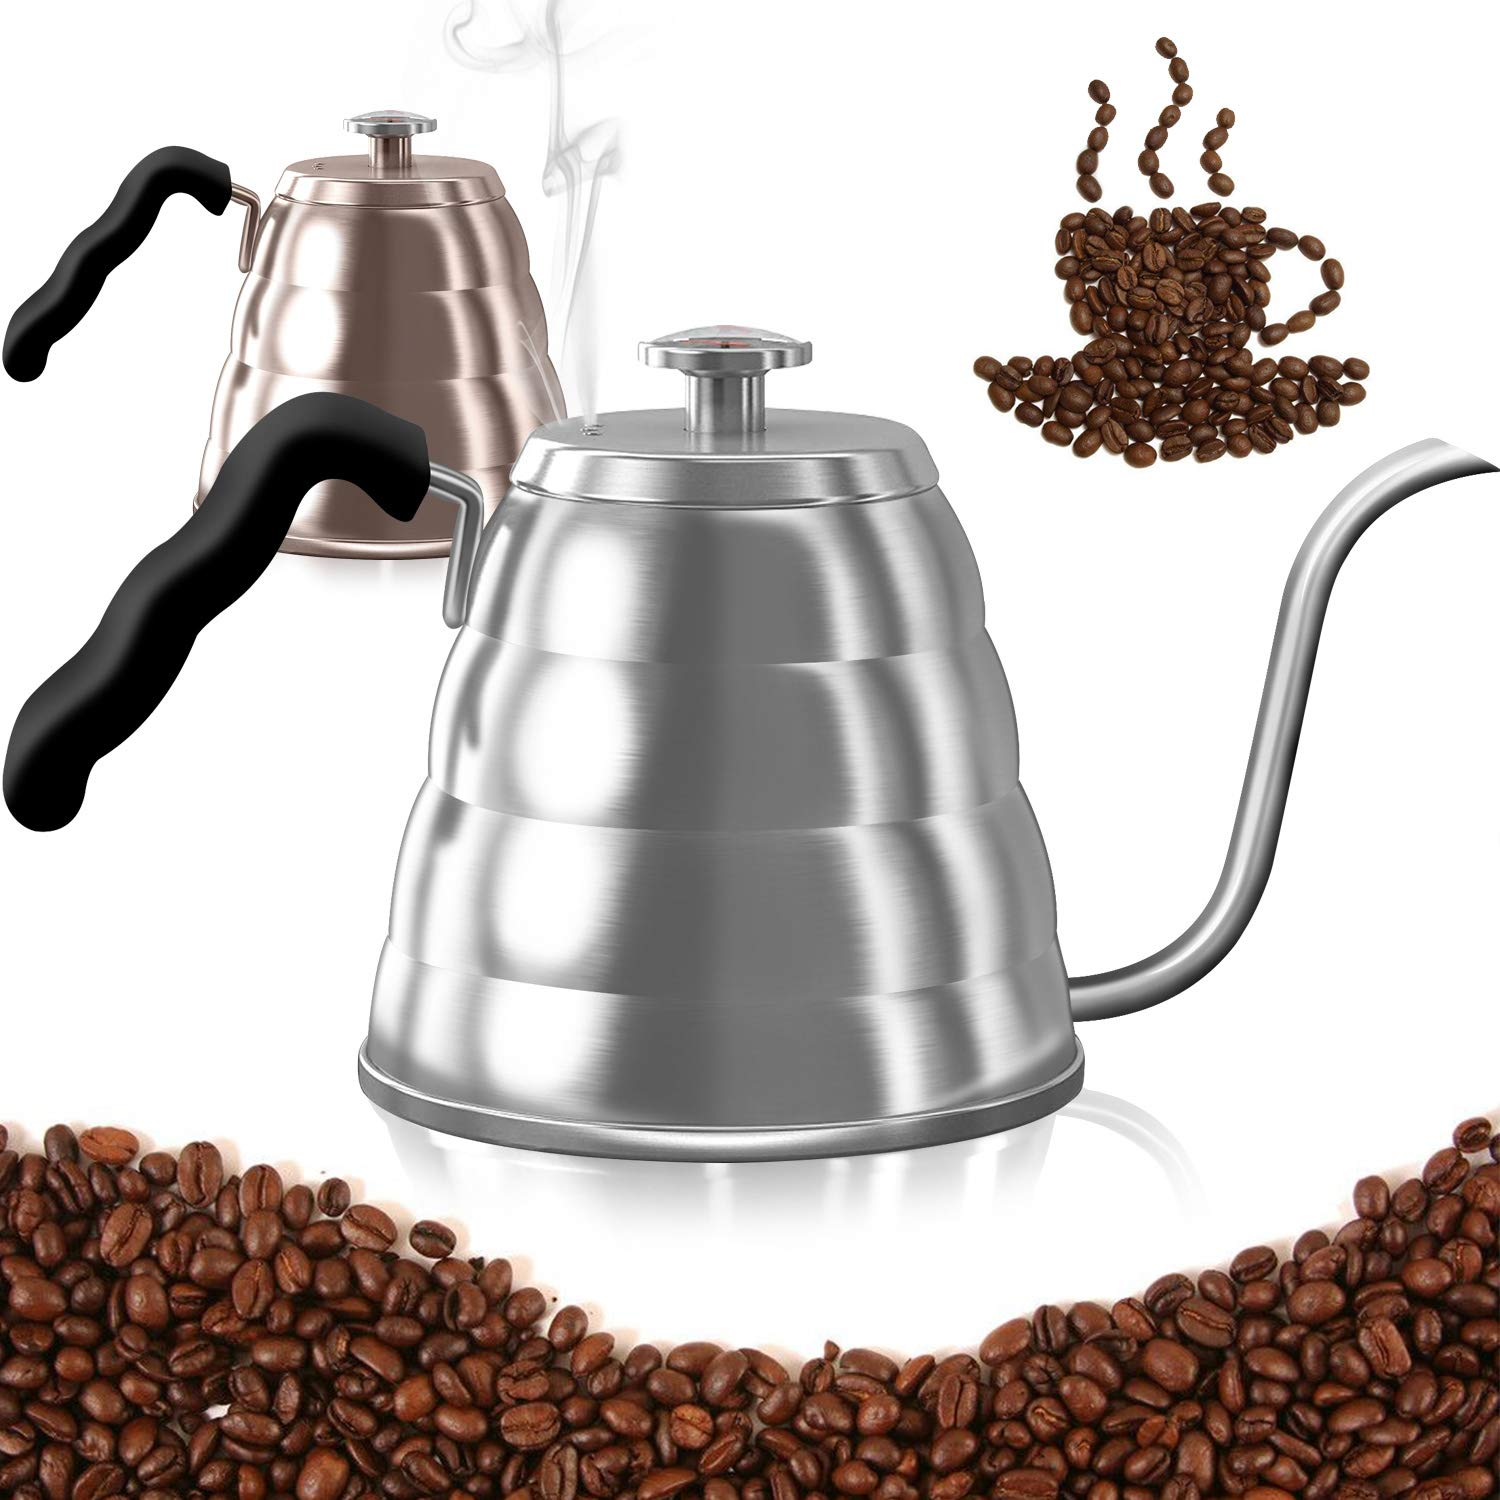 Dealz Frenzy Gooseneck Kettle-Pour Over Coffee Kettle with Thermometer,Stovetop Tea Pot-Triple Layer 18/8 Stainless Steel Drip Kettle,Induction Stove Safe,FDA, (40 floz, silver)...